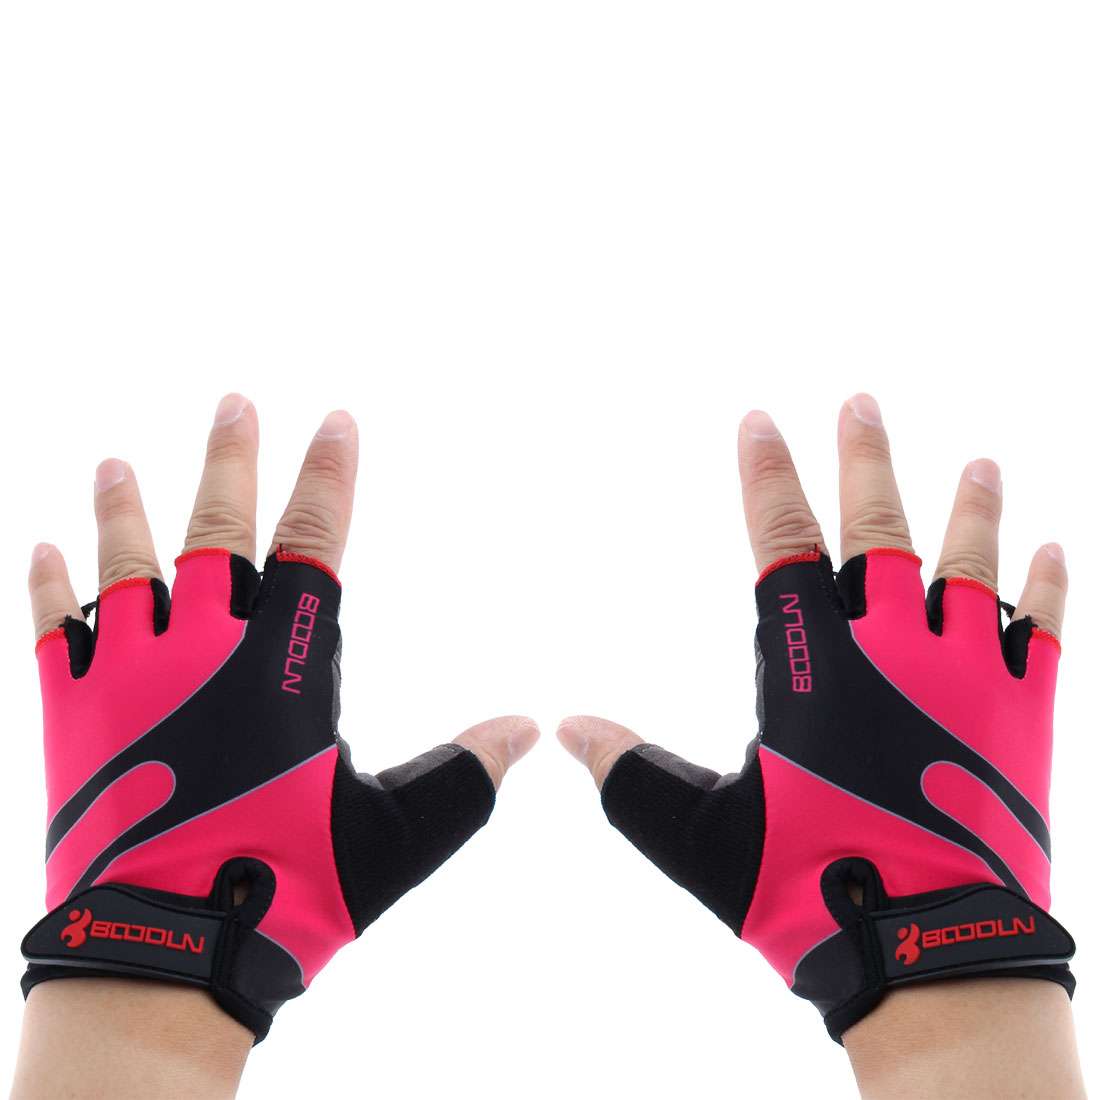 BOODUN Authorized Polyester Exercise Sports Lifting Training Bodybuilding Wrist Protector Half Finger Fitness Gloves Fuchsia M Pair